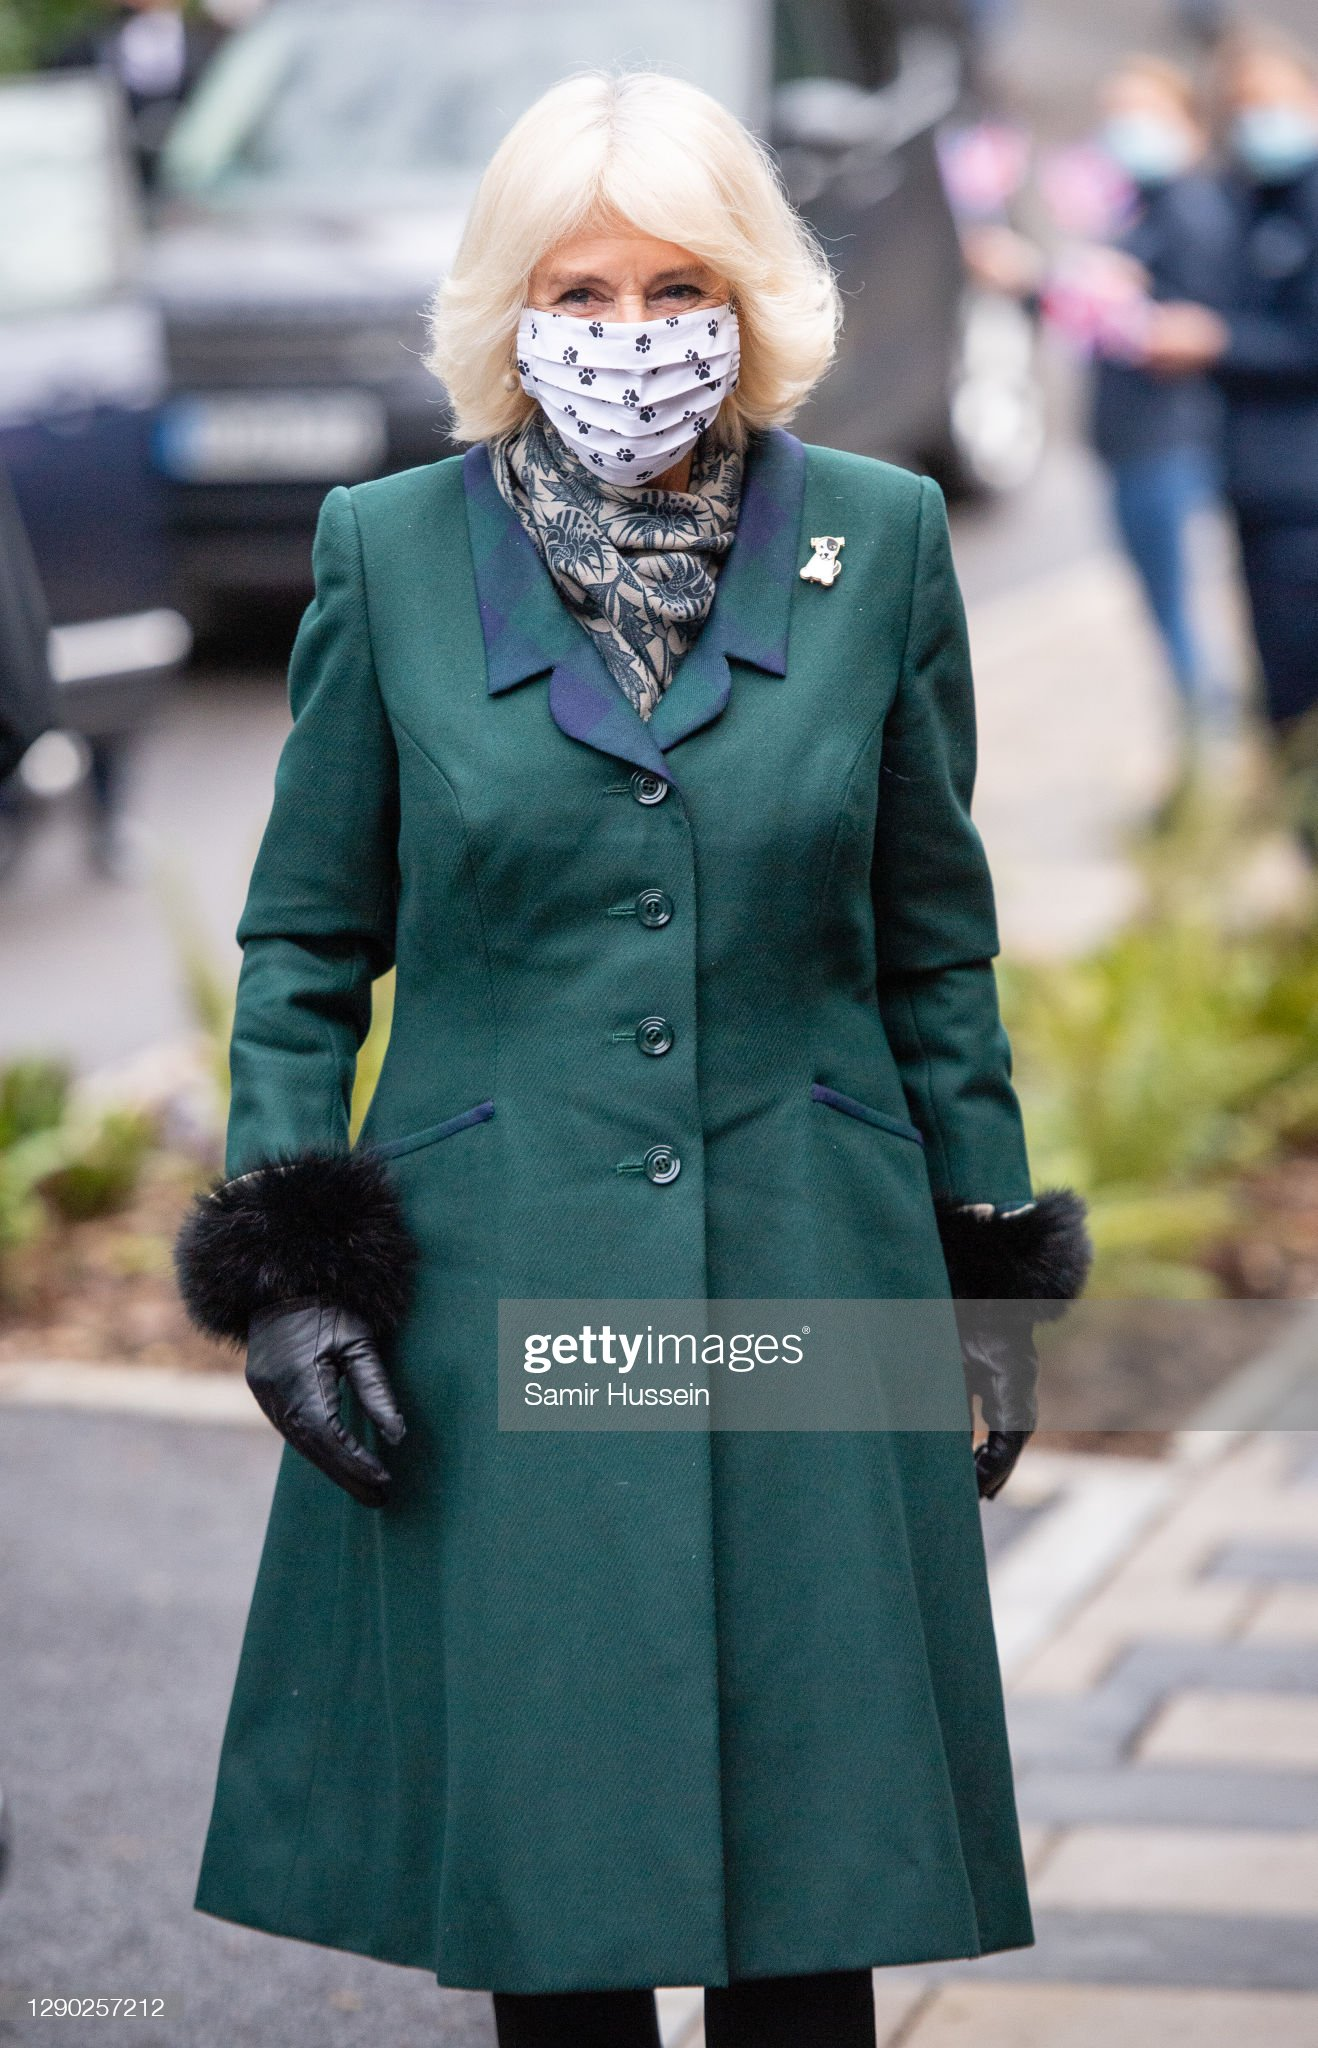 camilla-duchess-of-cornwall-visits-battersea-dogs-home-in-windsor-on-picture-id1290257212